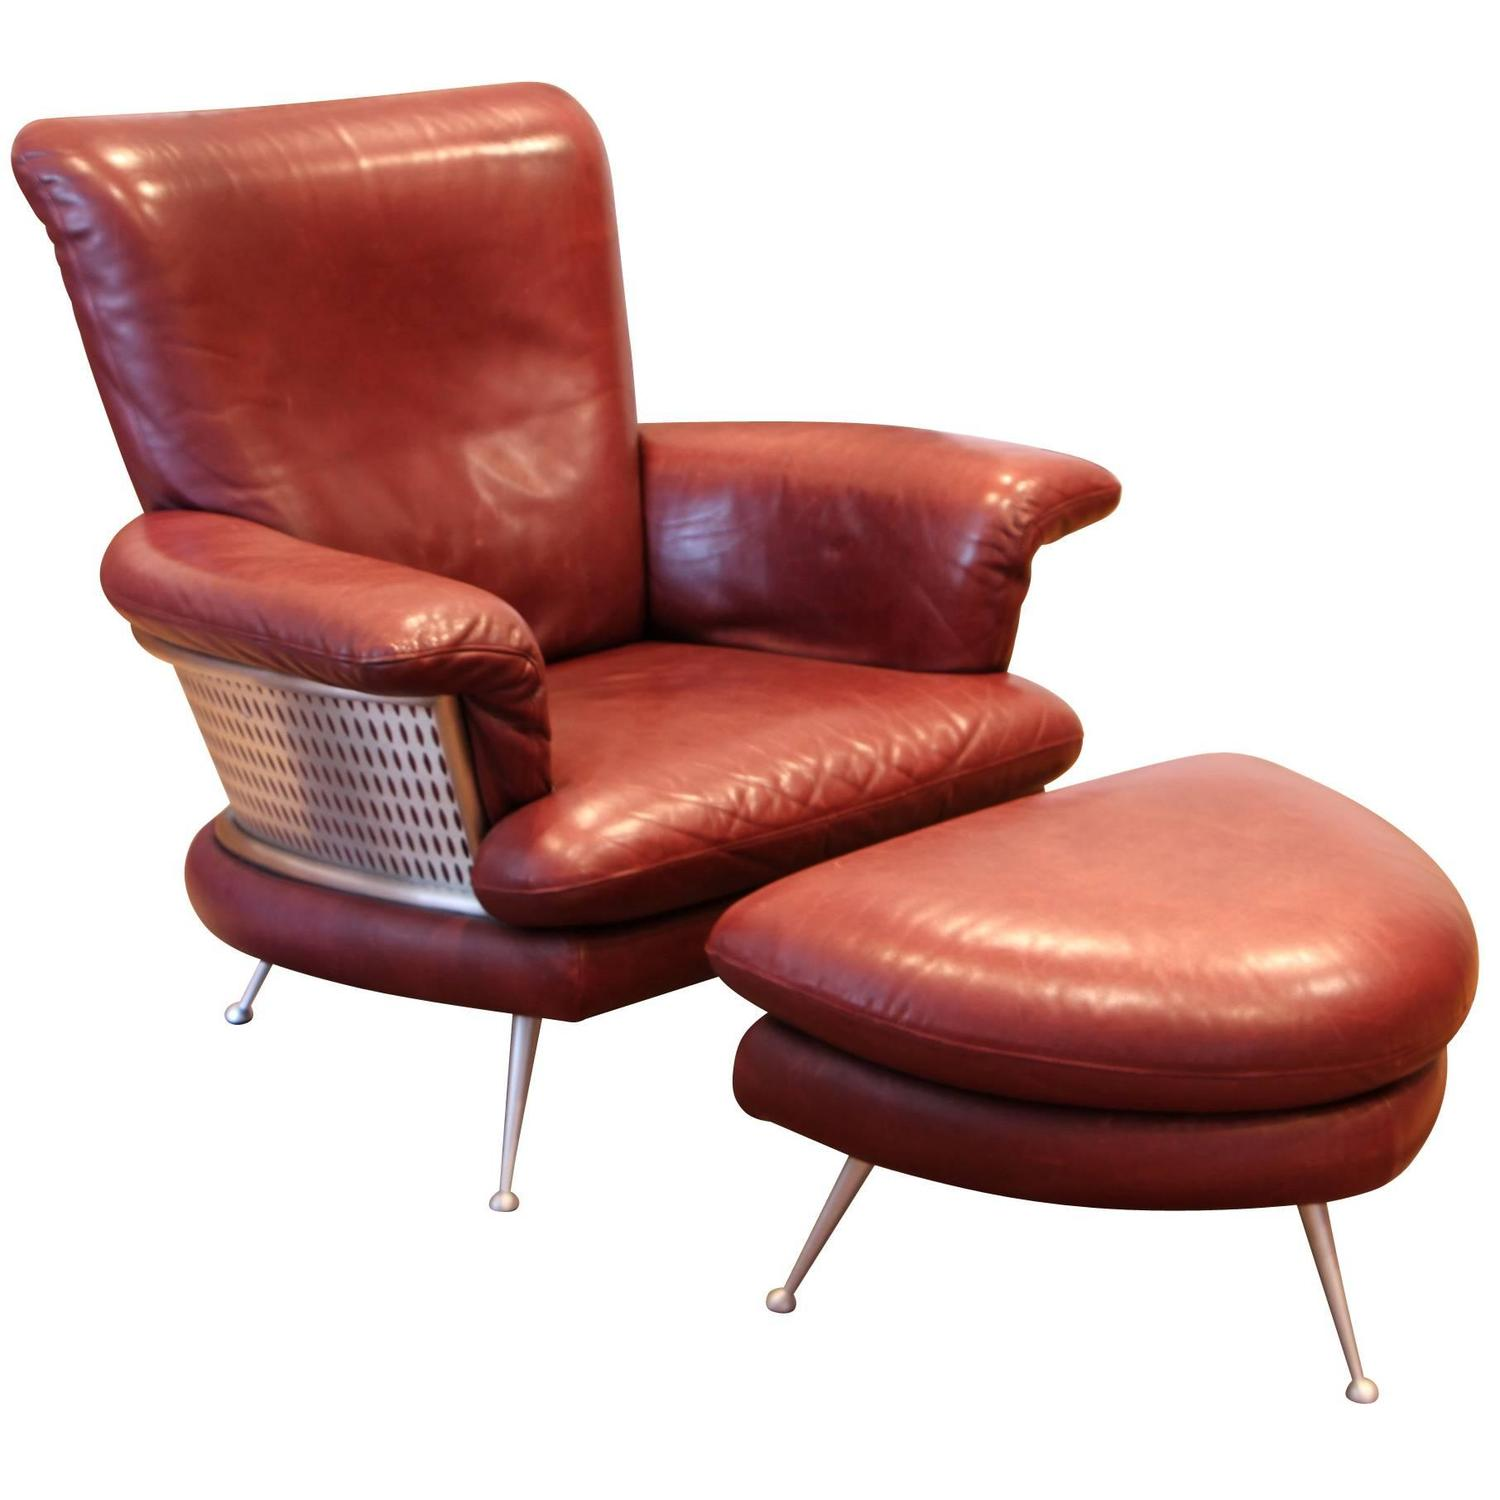 Leather Jetson Chair and Ottoman by Rolf Benz for Cy Mann at 1stdibs